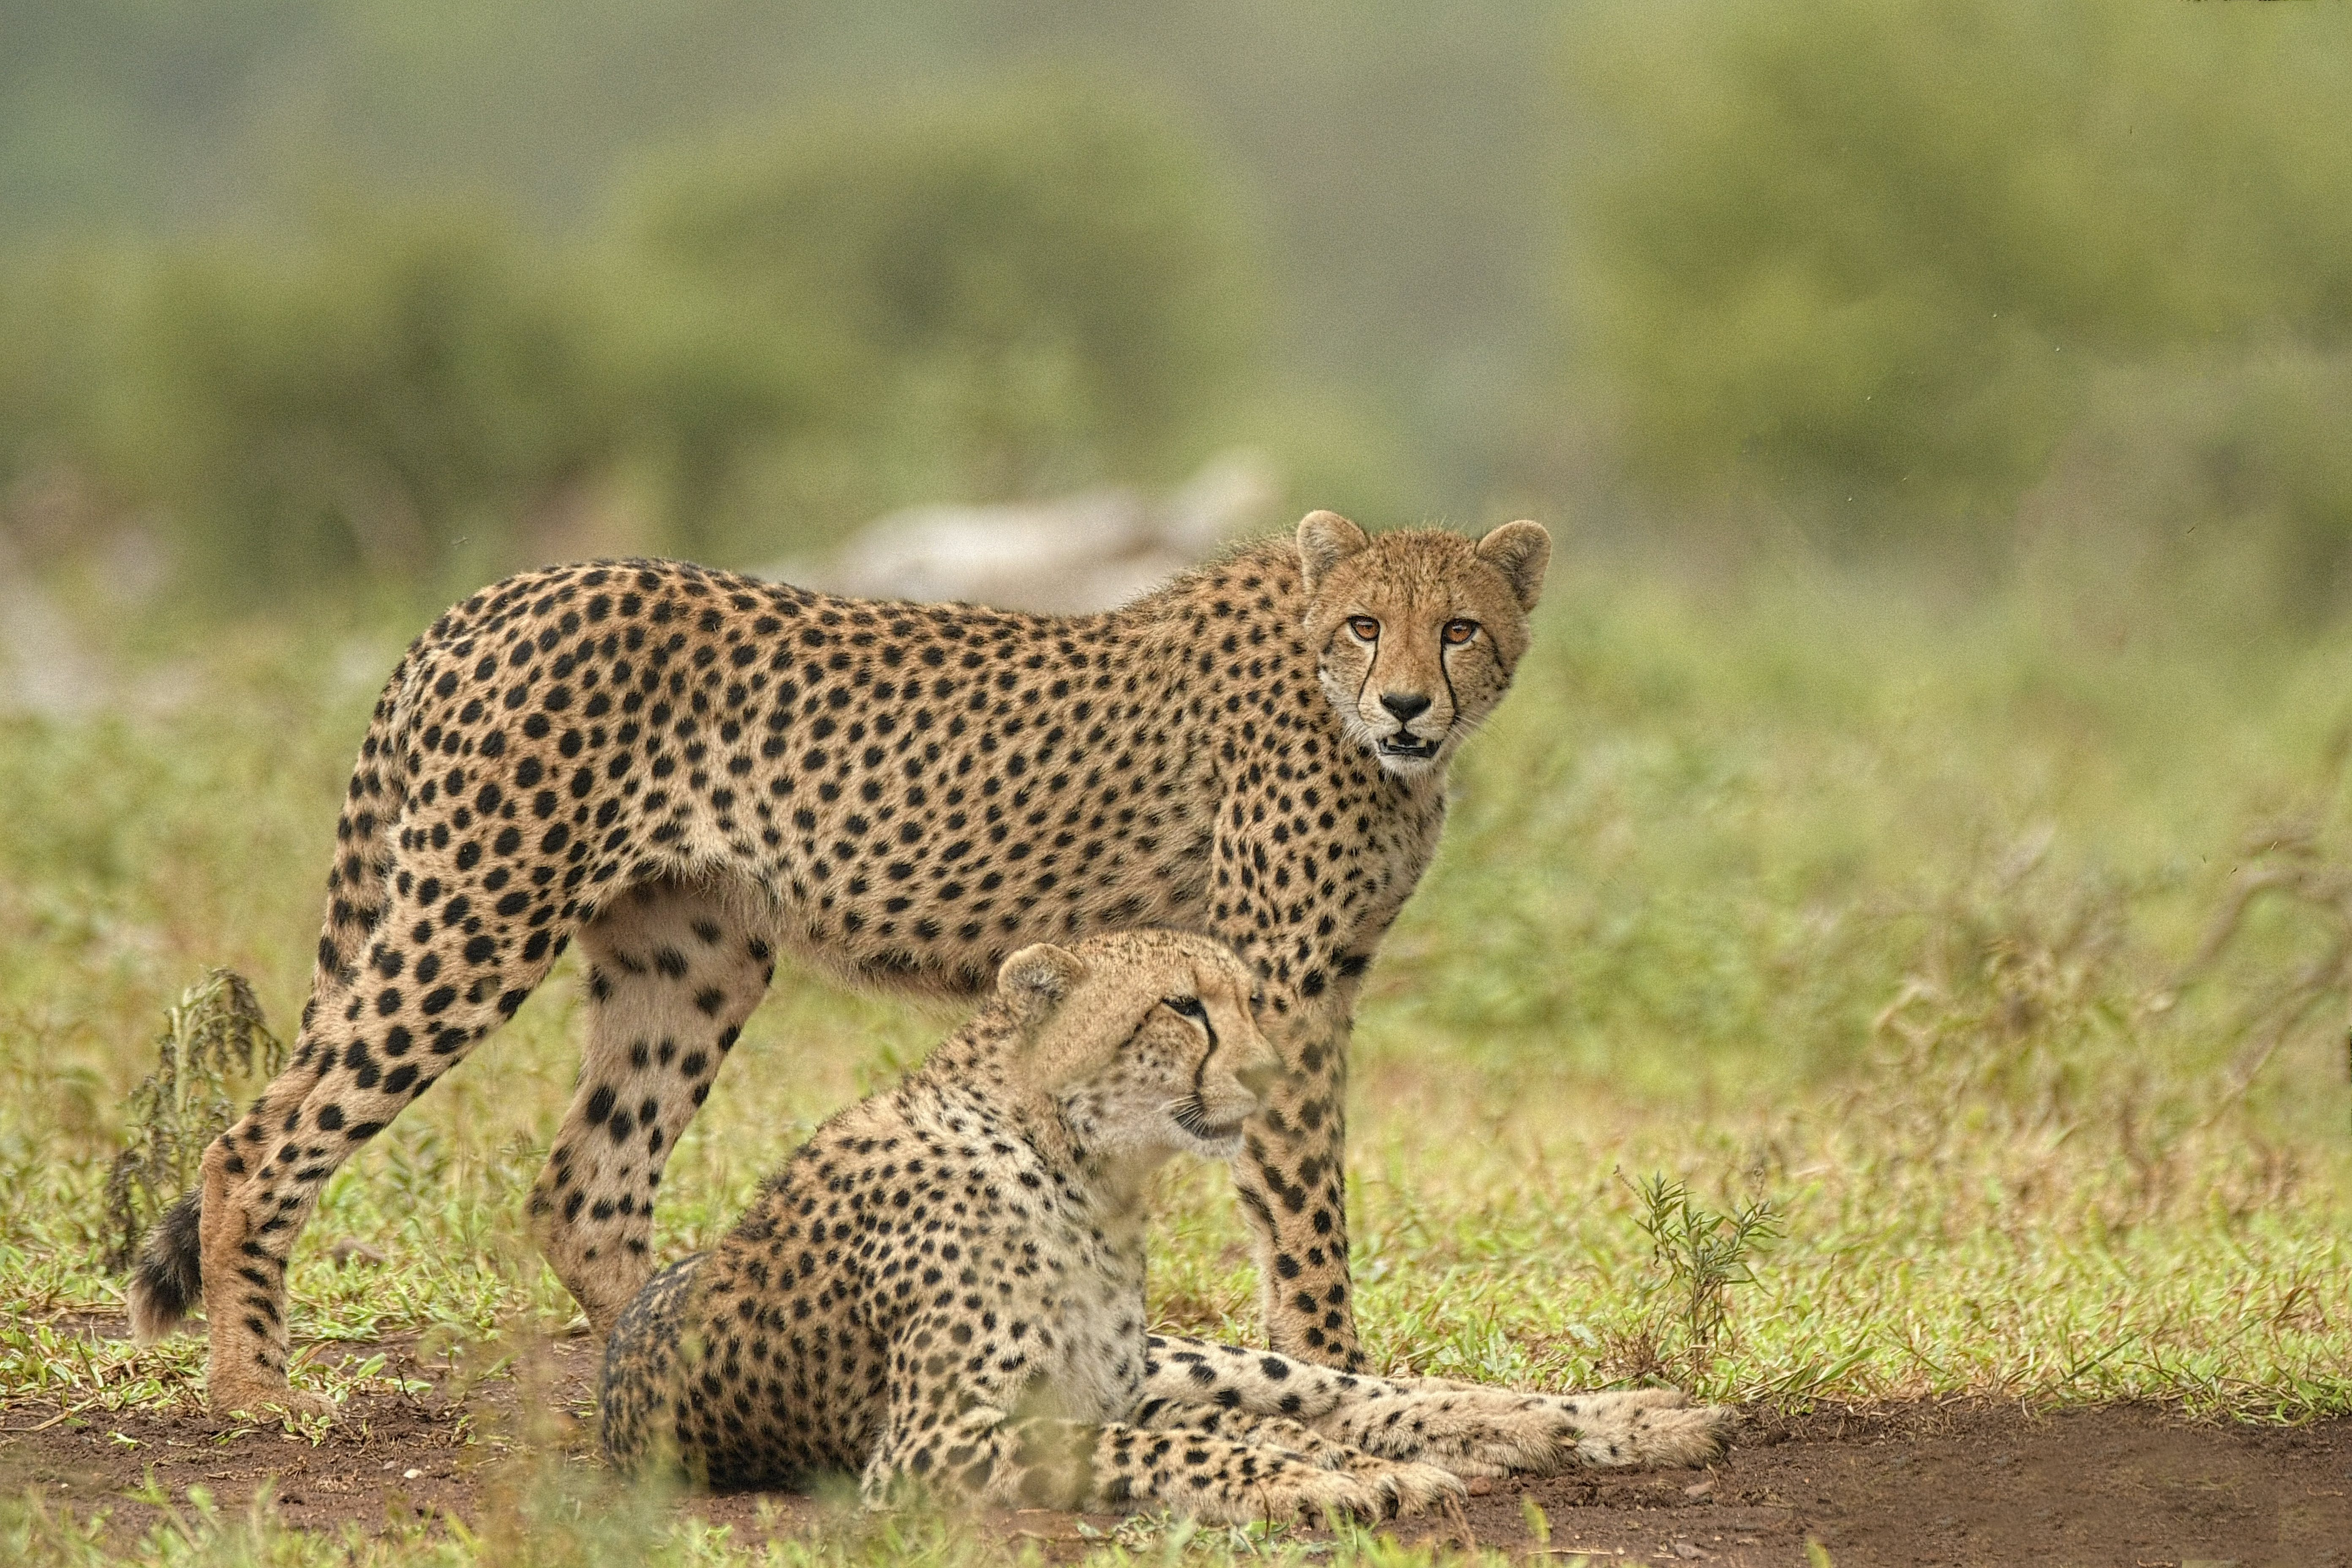 Brown Cheetah